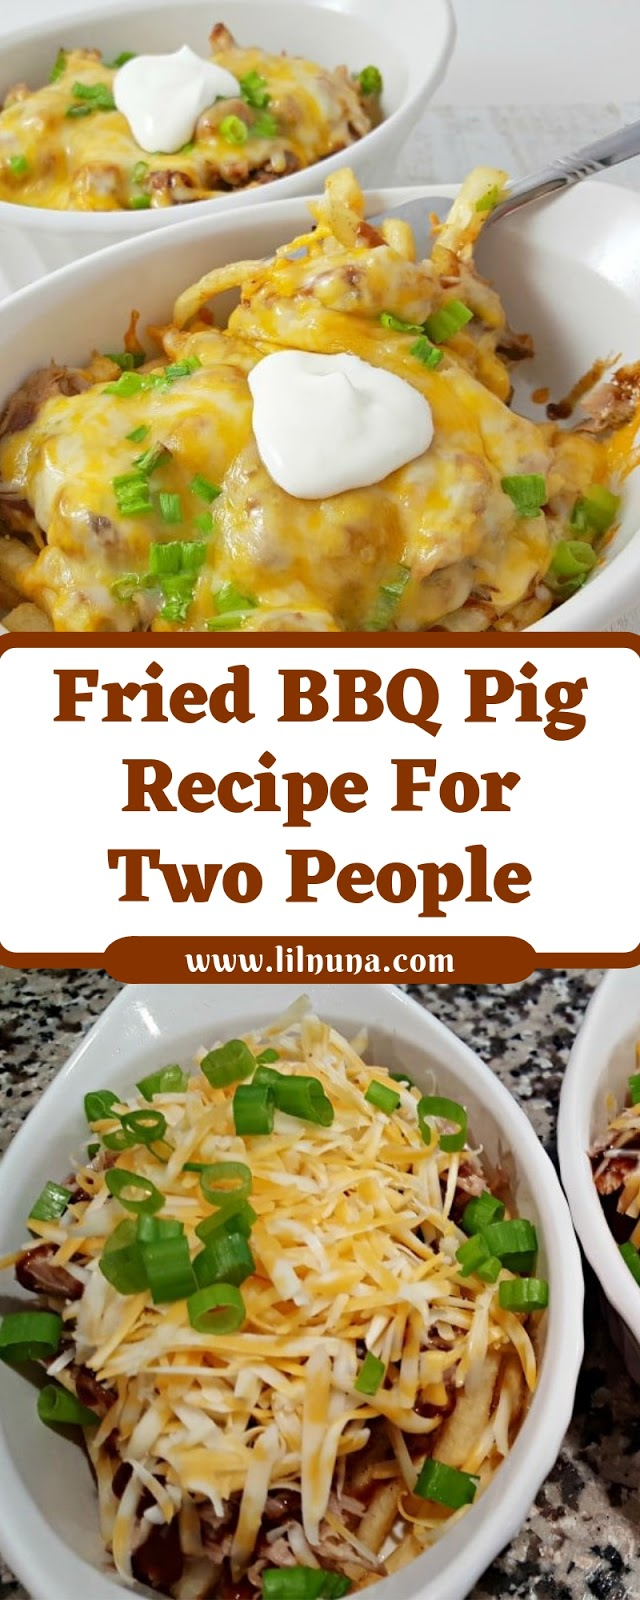 Fried BBQ Pig Recipe For Two People